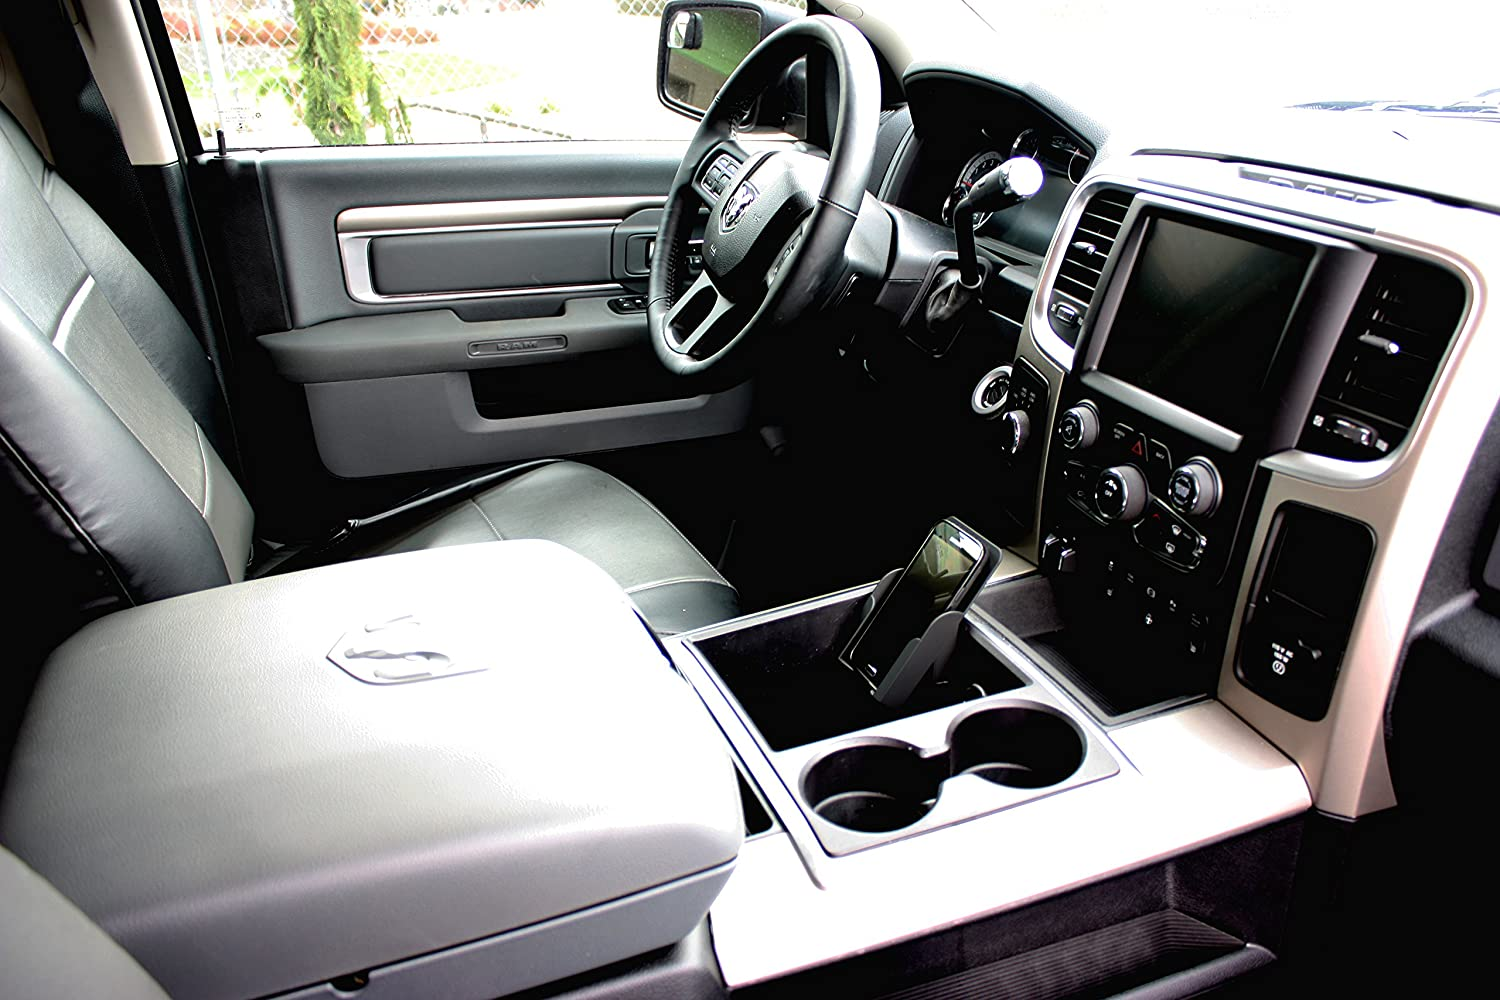 Large WadeStar RPC-Large RPC Phone Holder Converts the Business Card Holder Into a Cell Phone Holder in Select 2009-15 Dodge Ram Trucks